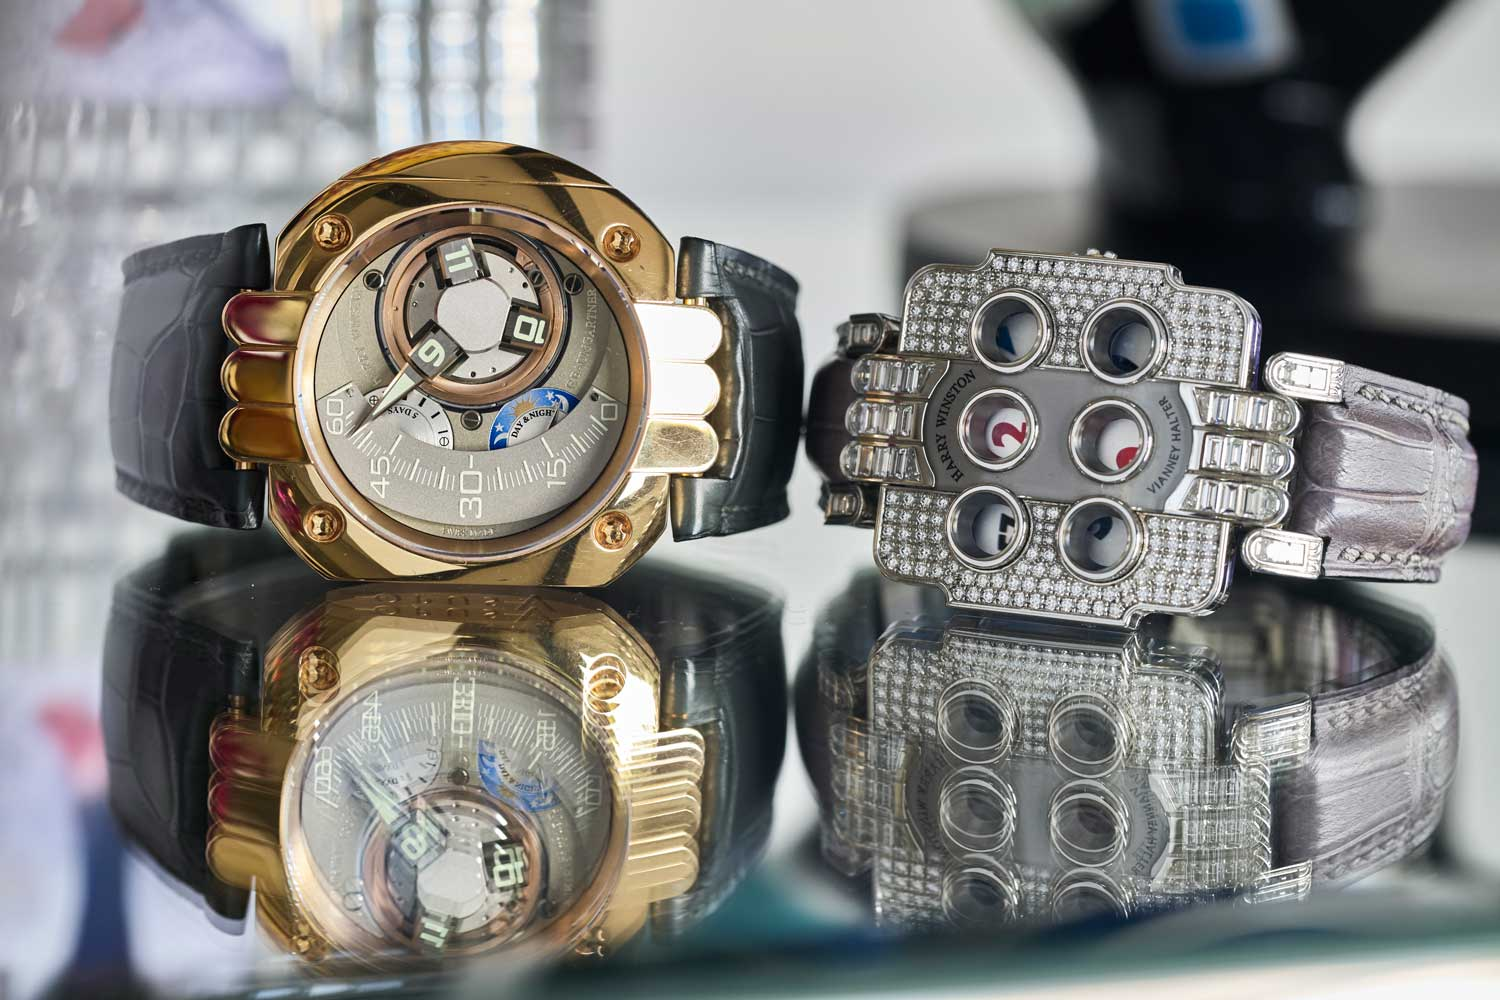 Two horological marvels from Santa Laura's collection: the Harry Winston Opus 5 created by Felix Baumgartner and the Opus 3 created by Vianney Halter (©Revolution)